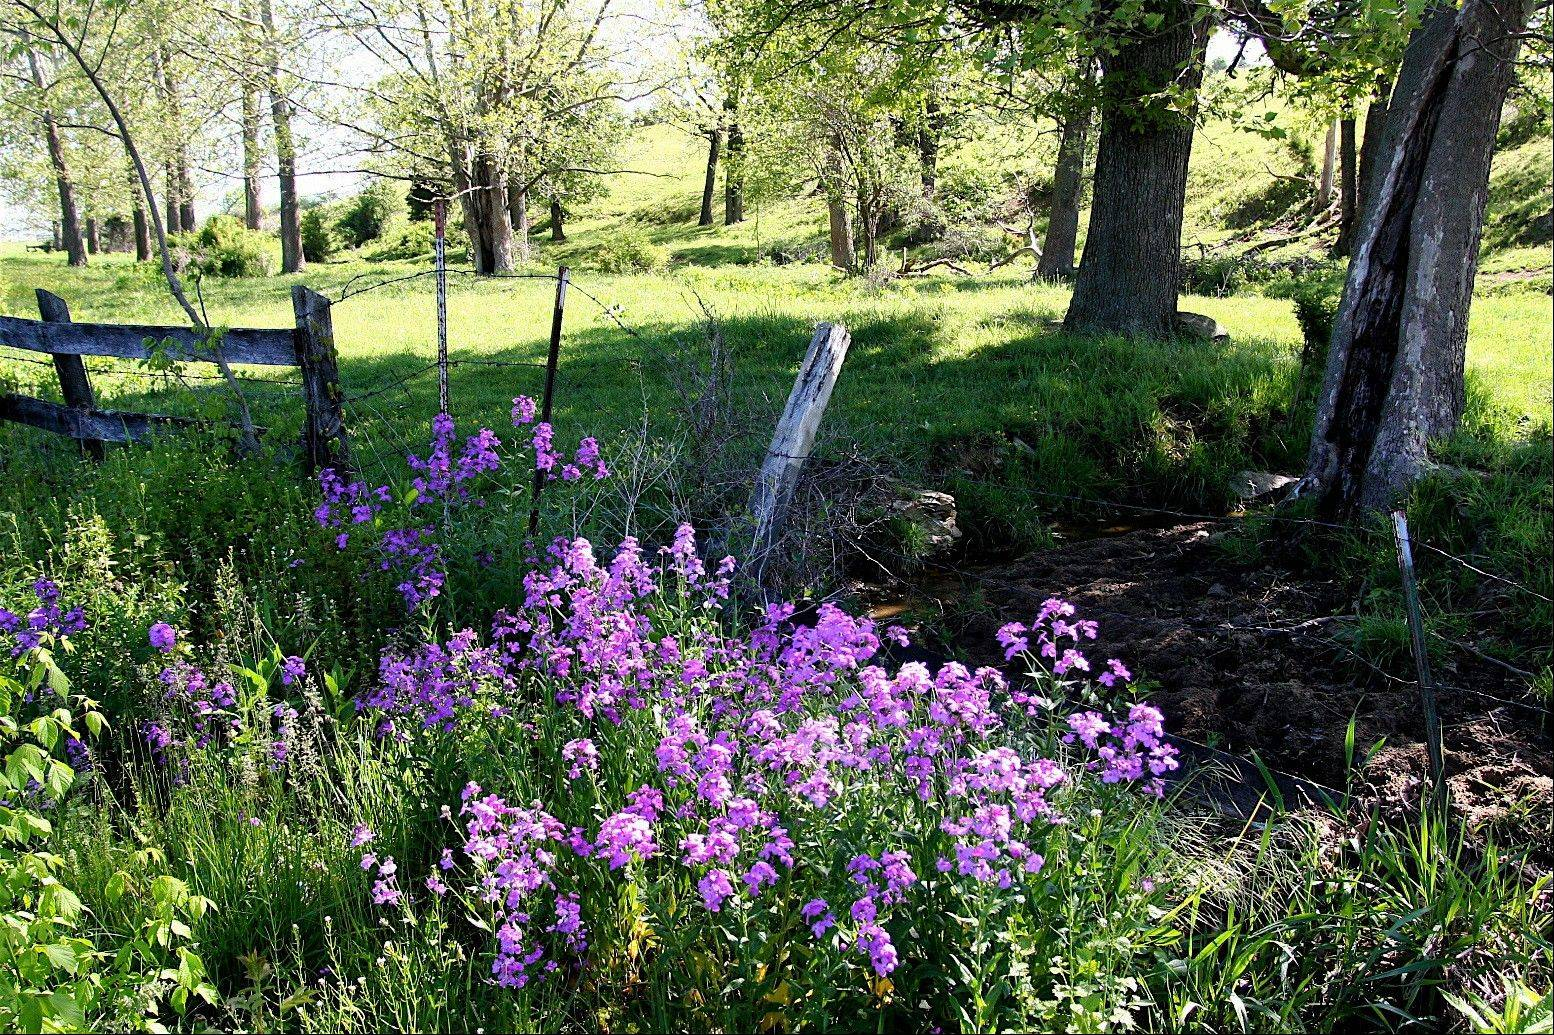 Phlox daisies are among the many meadow flowers that can thrive in traditional landscapes -- even in city settings. Prairie garden combinations include flowers, shrubs and trees. They require little attention, add year-round color and interest and provide wildlife-friendly habitat.